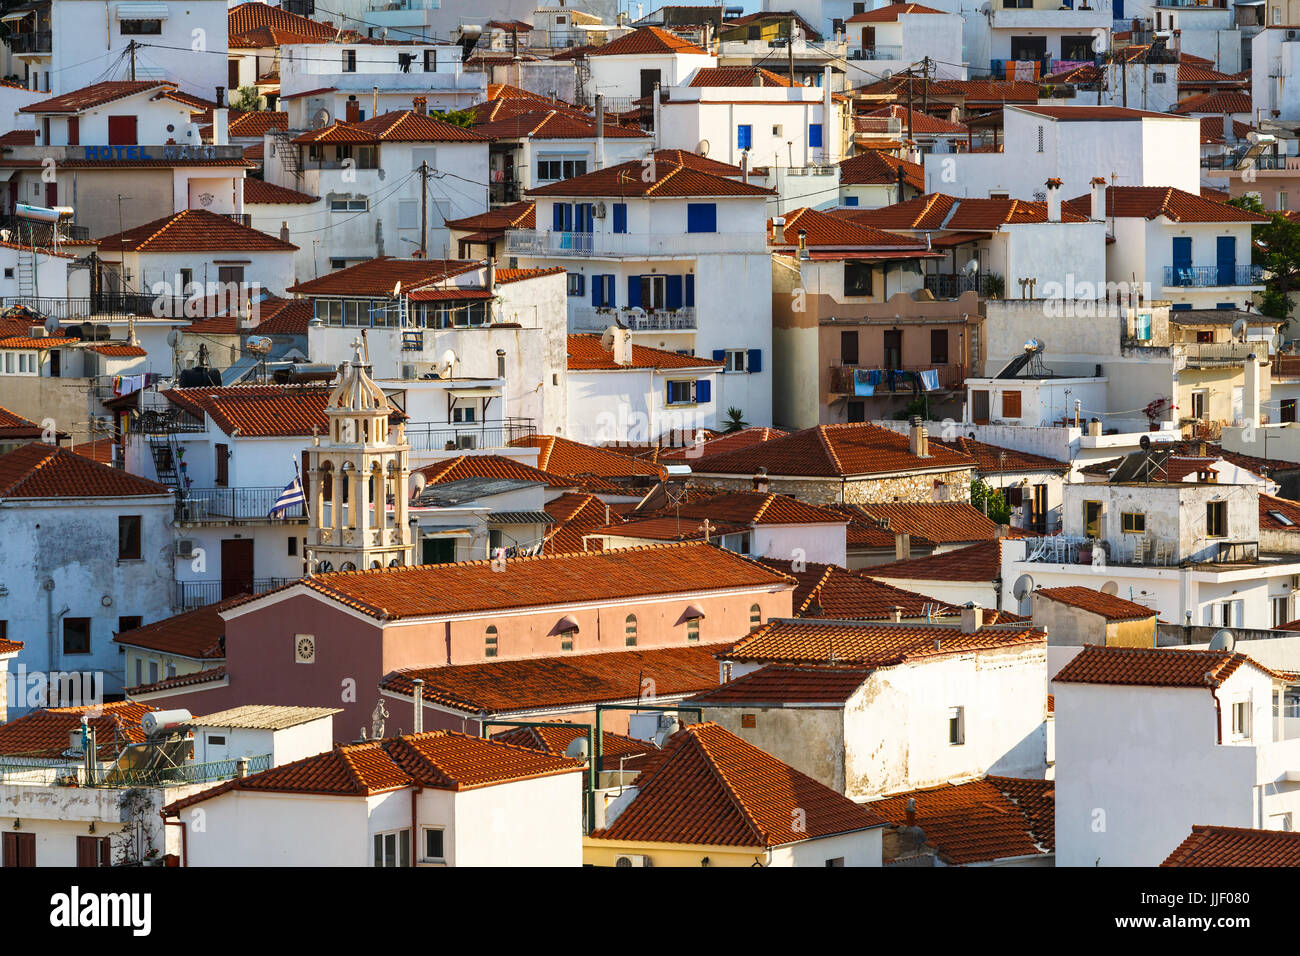 View of the old town on Skiathos island, Greece. - Stock Image